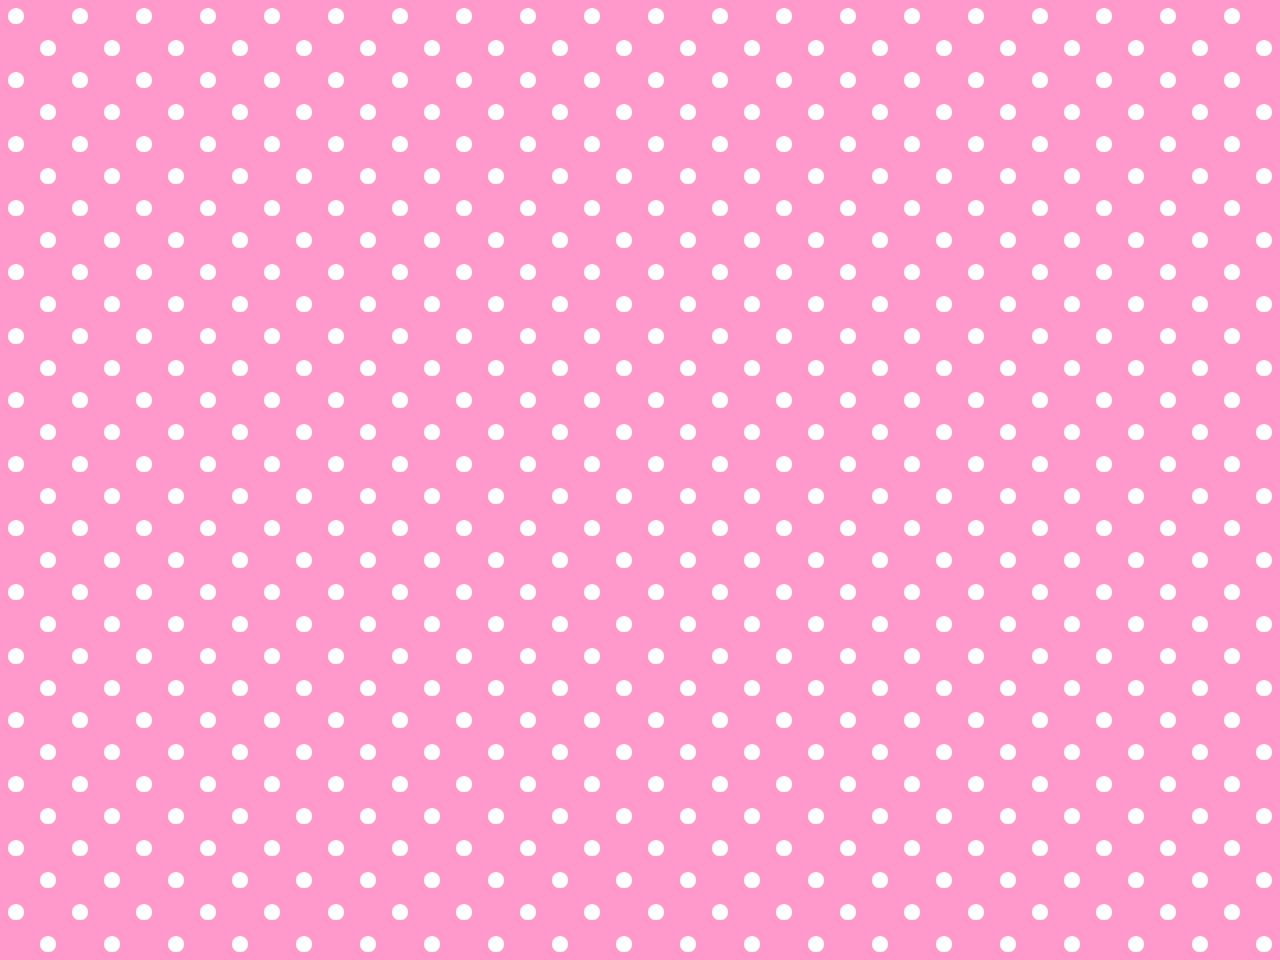 Pink Backgrounds Png Wallpaper Cave